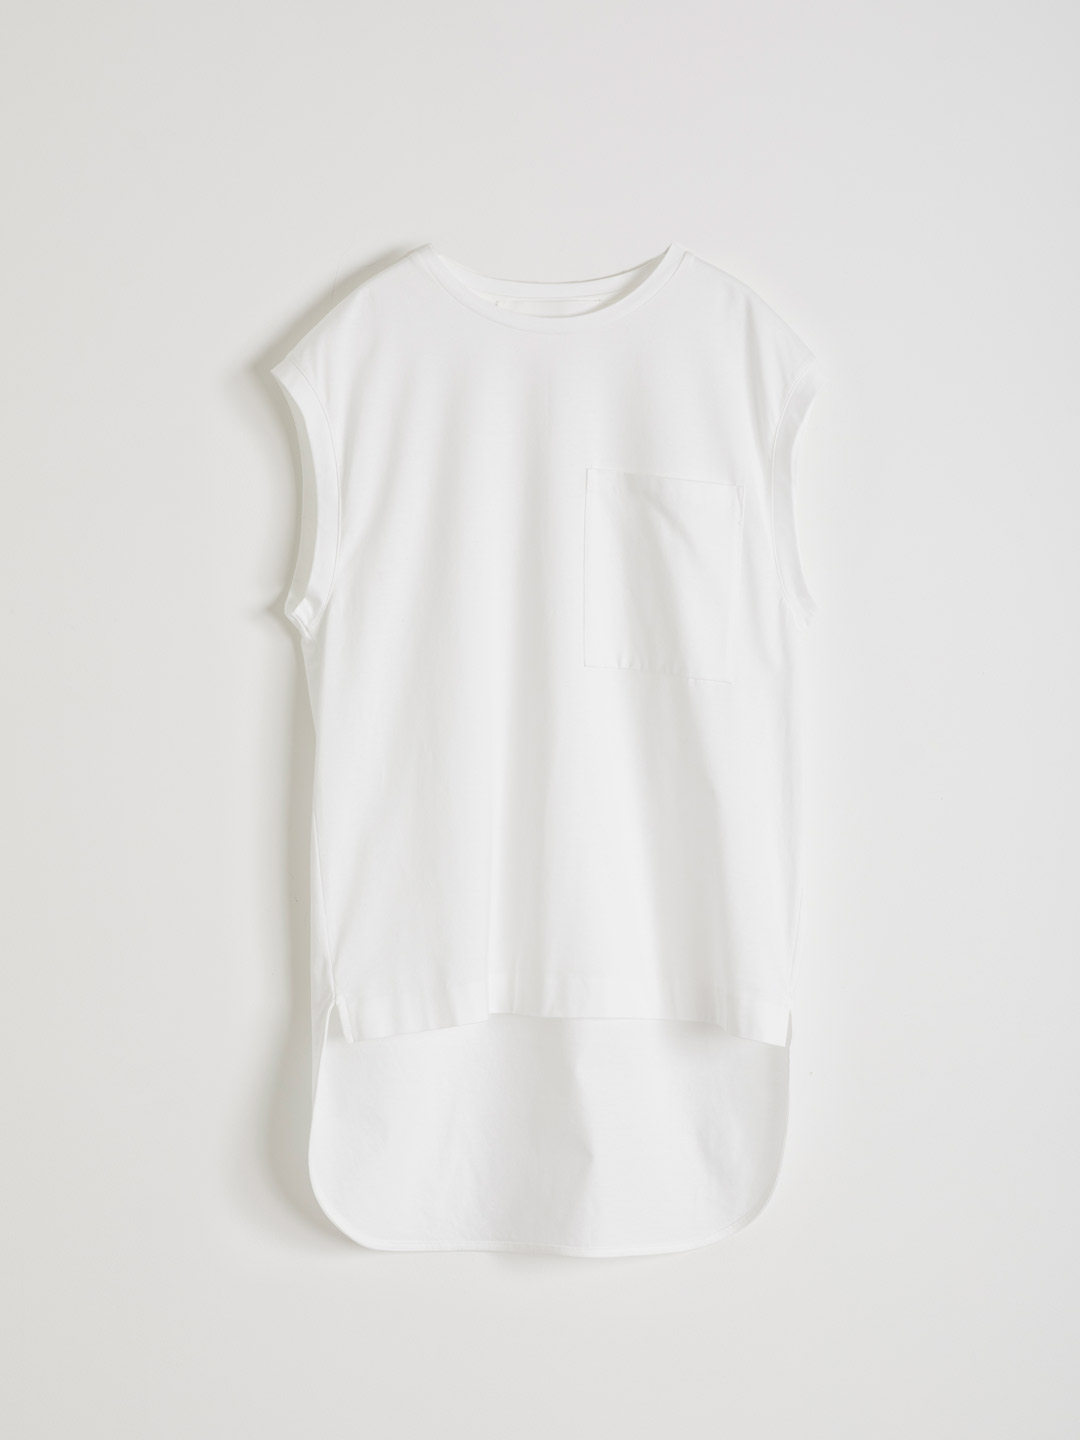 French Sleeve T-shirt - White